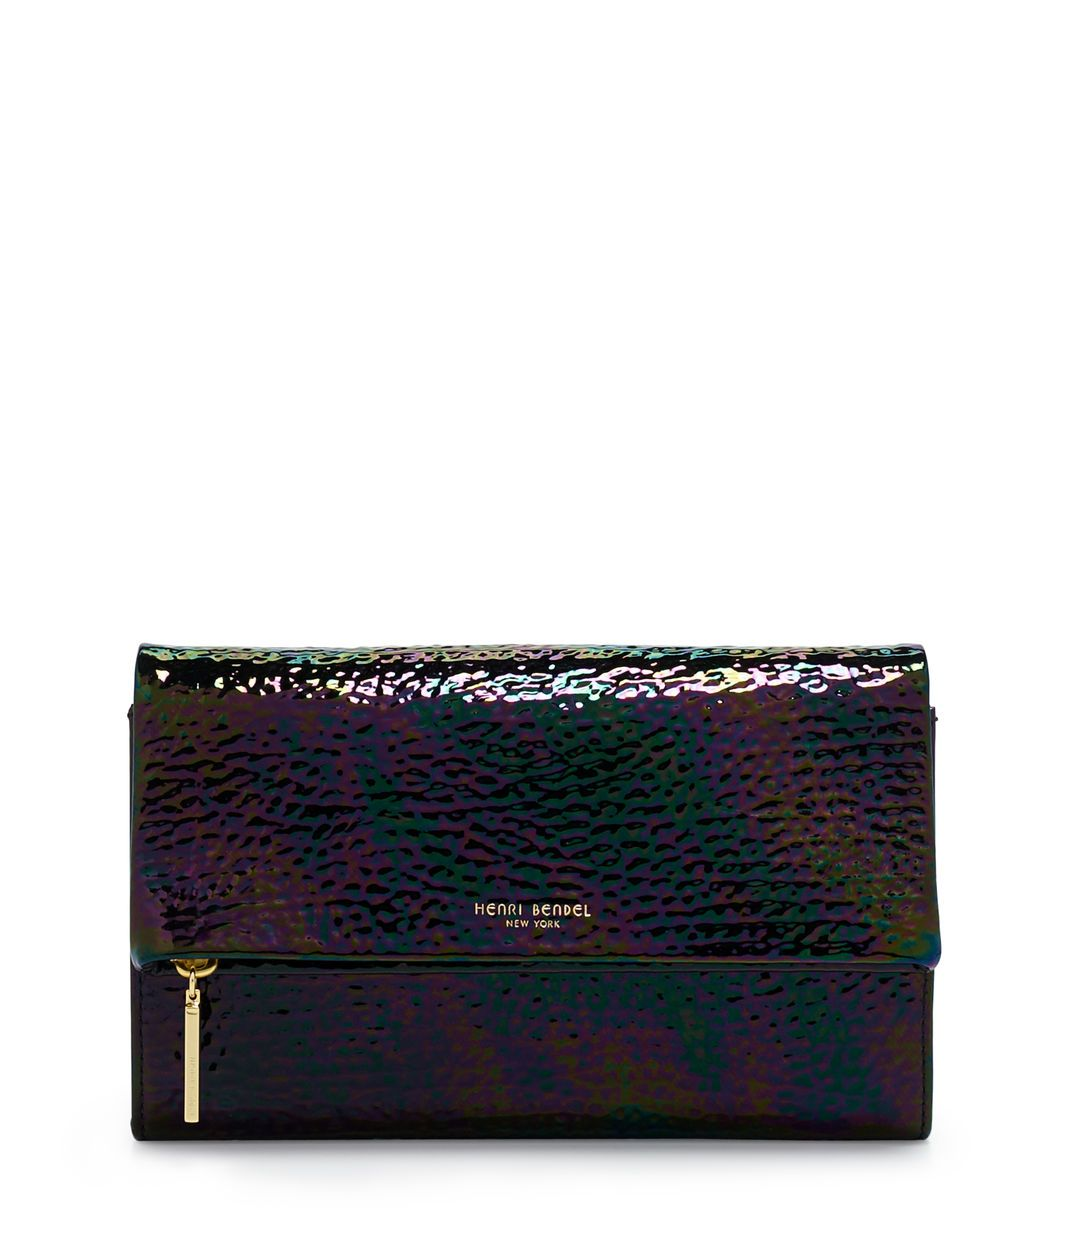 Grab your girls, your glitter, and this designer clutch from Henri Bendel.  Made 95de80a14c